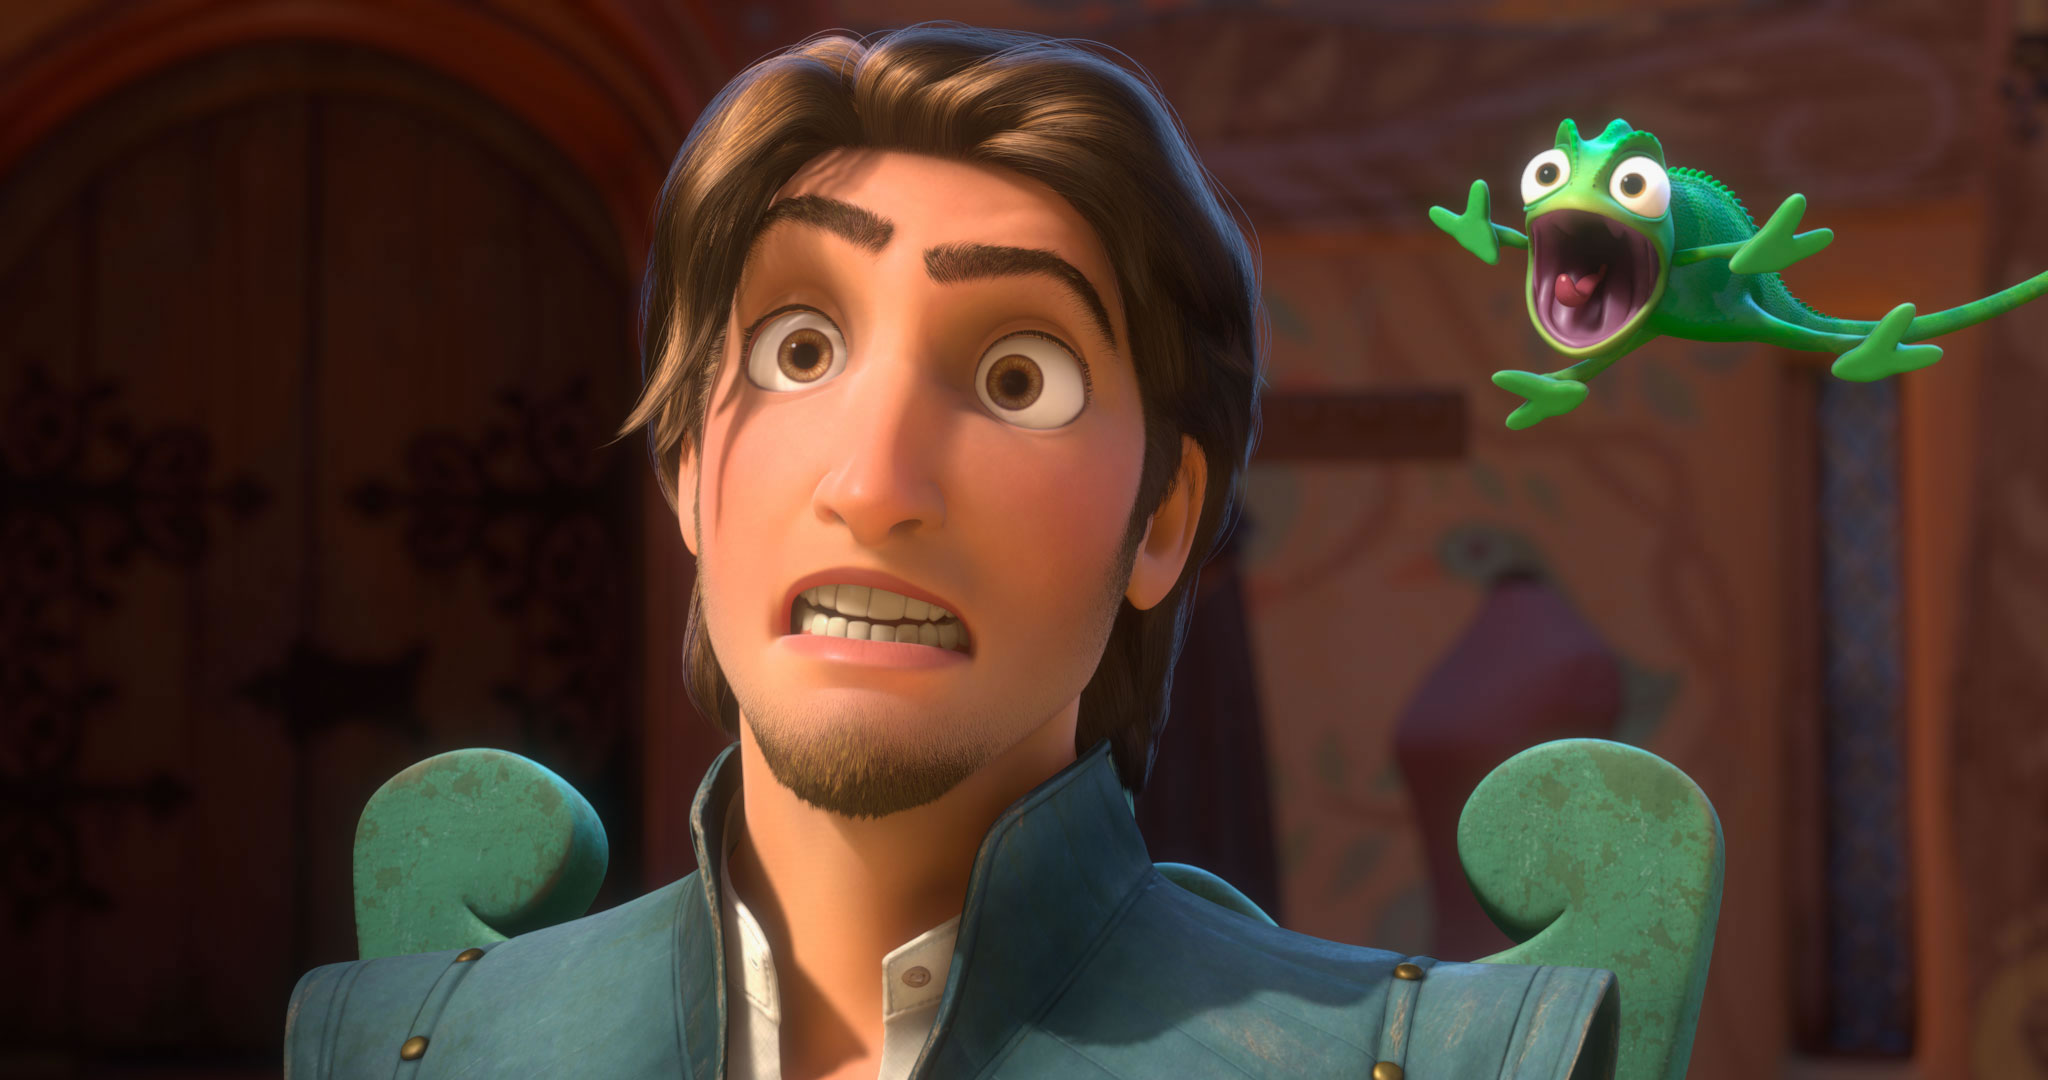 Over 40 Images from Walt Disney's TANGLED | Collider